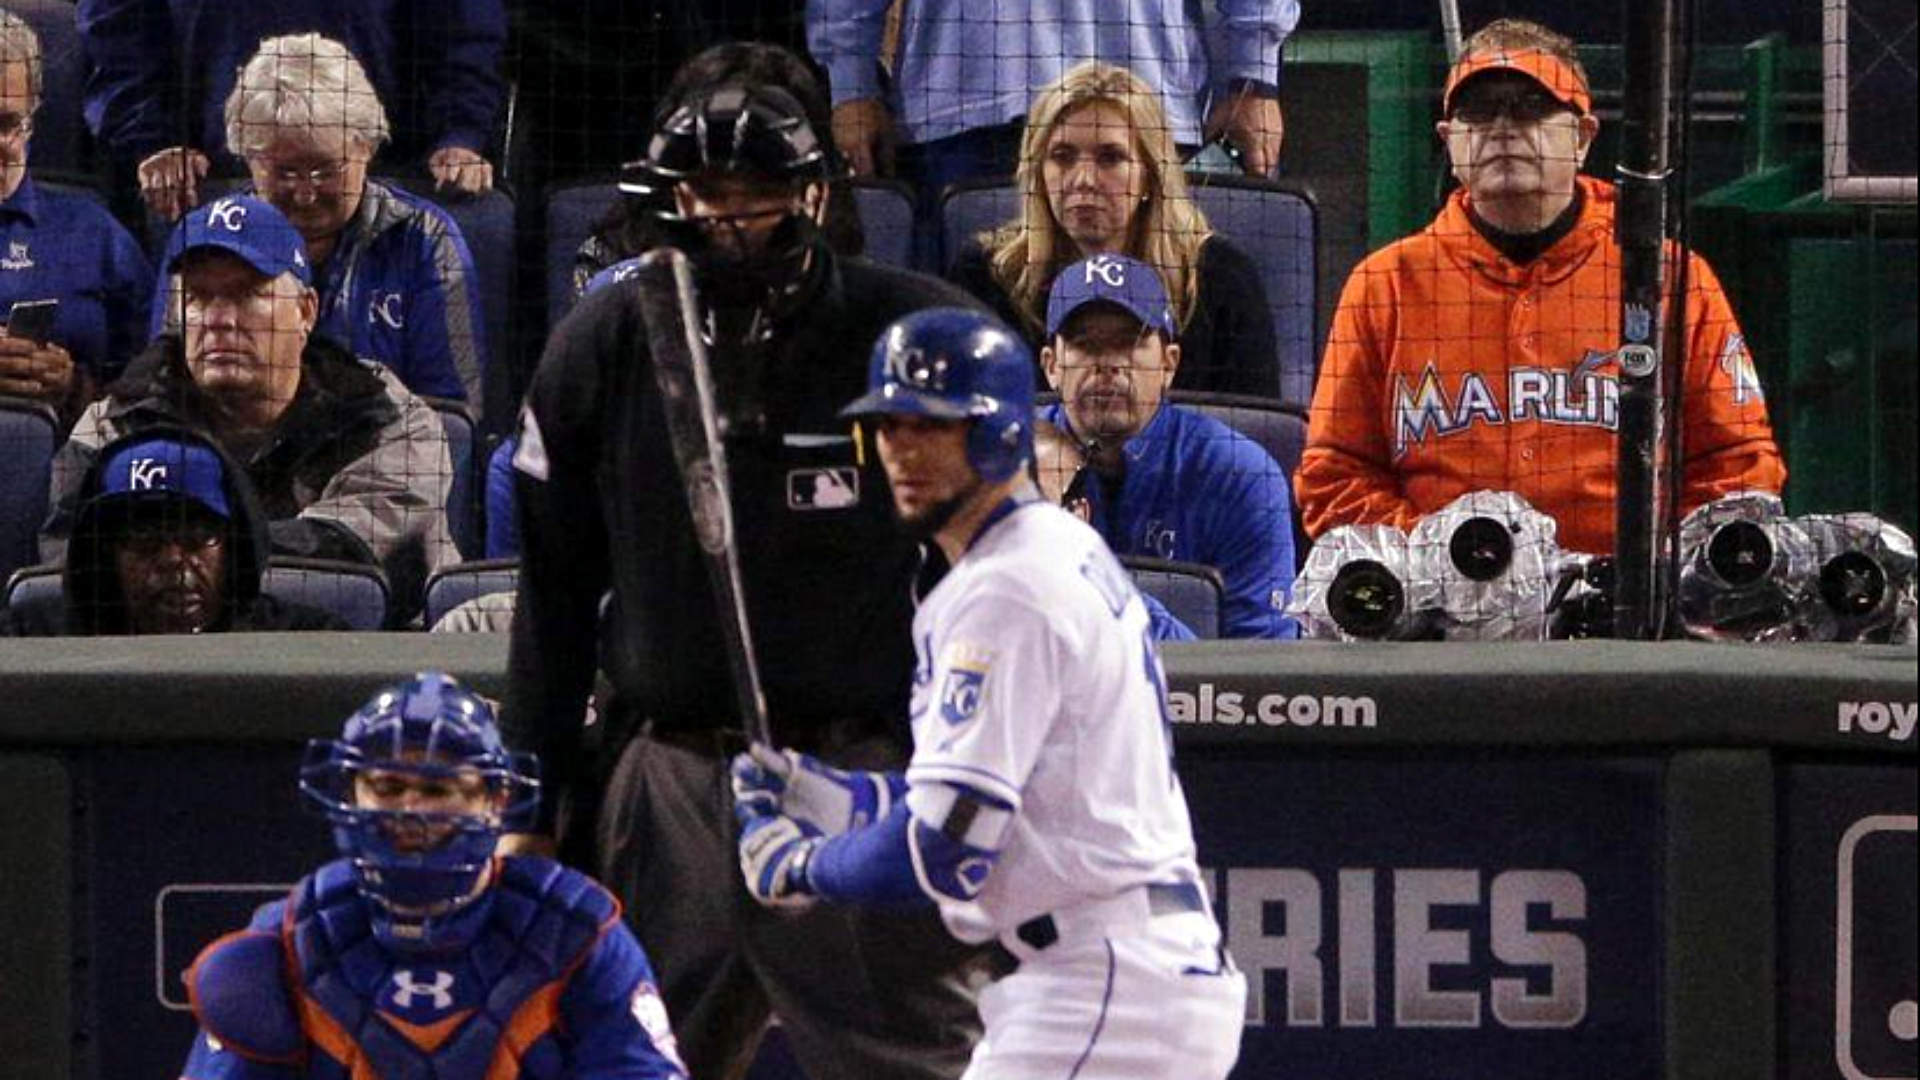 Why You May Not Be Seeing Much Of The Marlins Man This Season